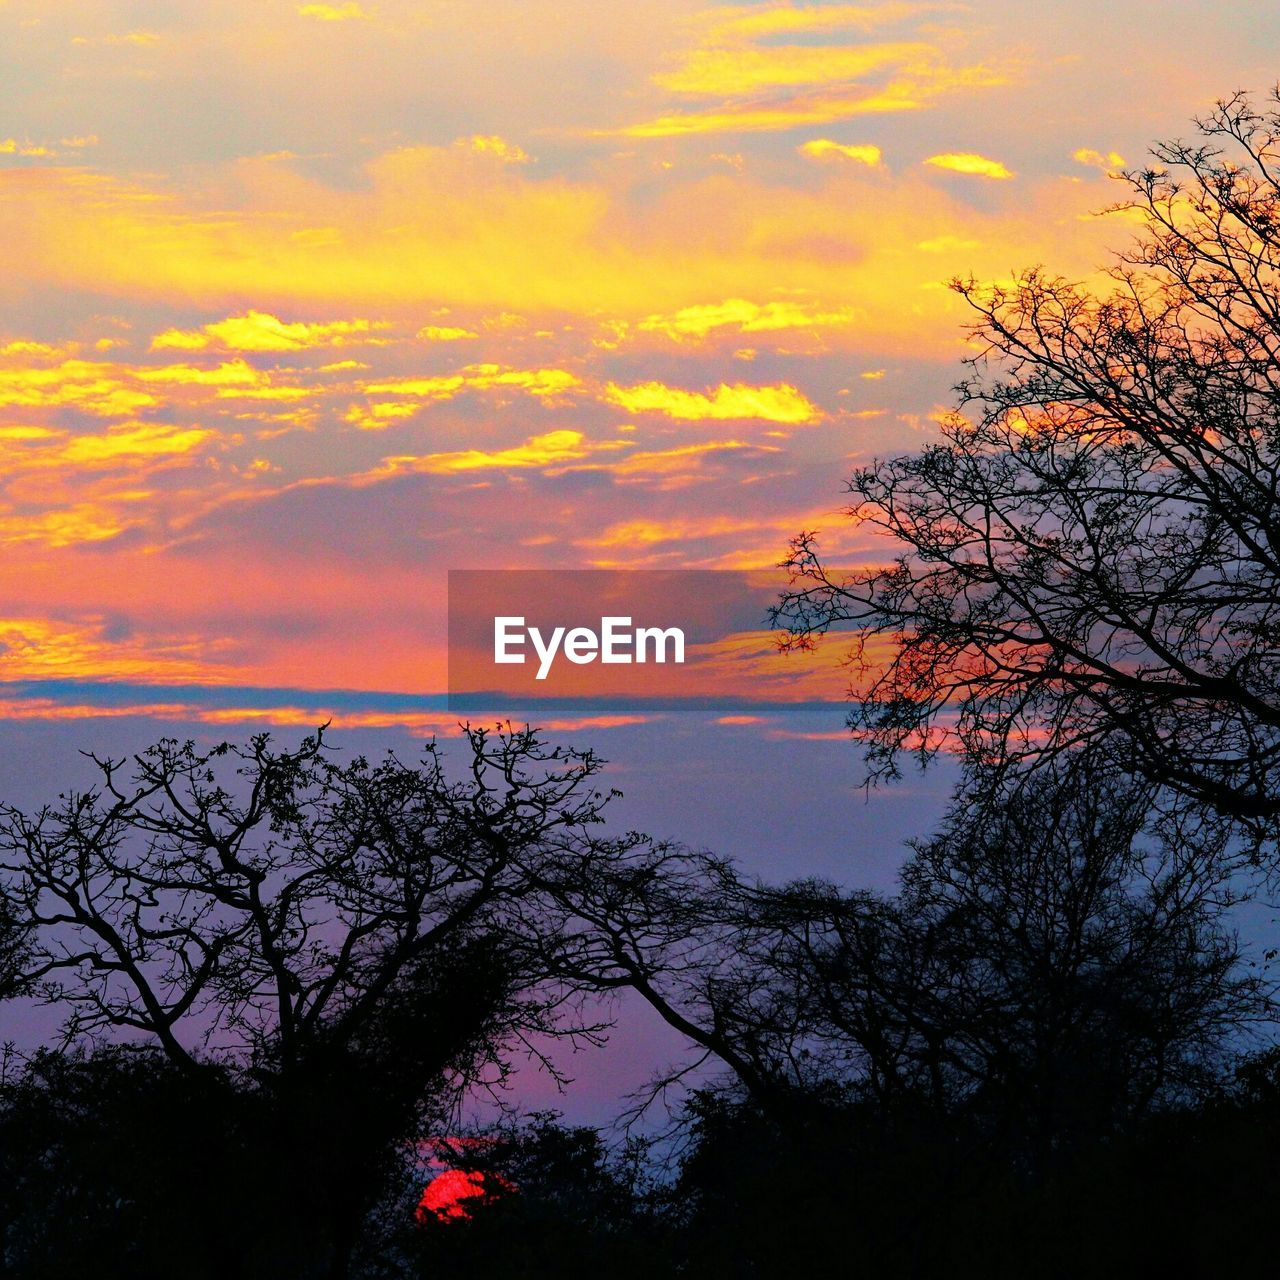 sunset, beauty in nature, tree, nature, sky, scenics, orange color, tranquility, tranquil scene, silhouette, no people, outdoors, cloud - sky, water, day